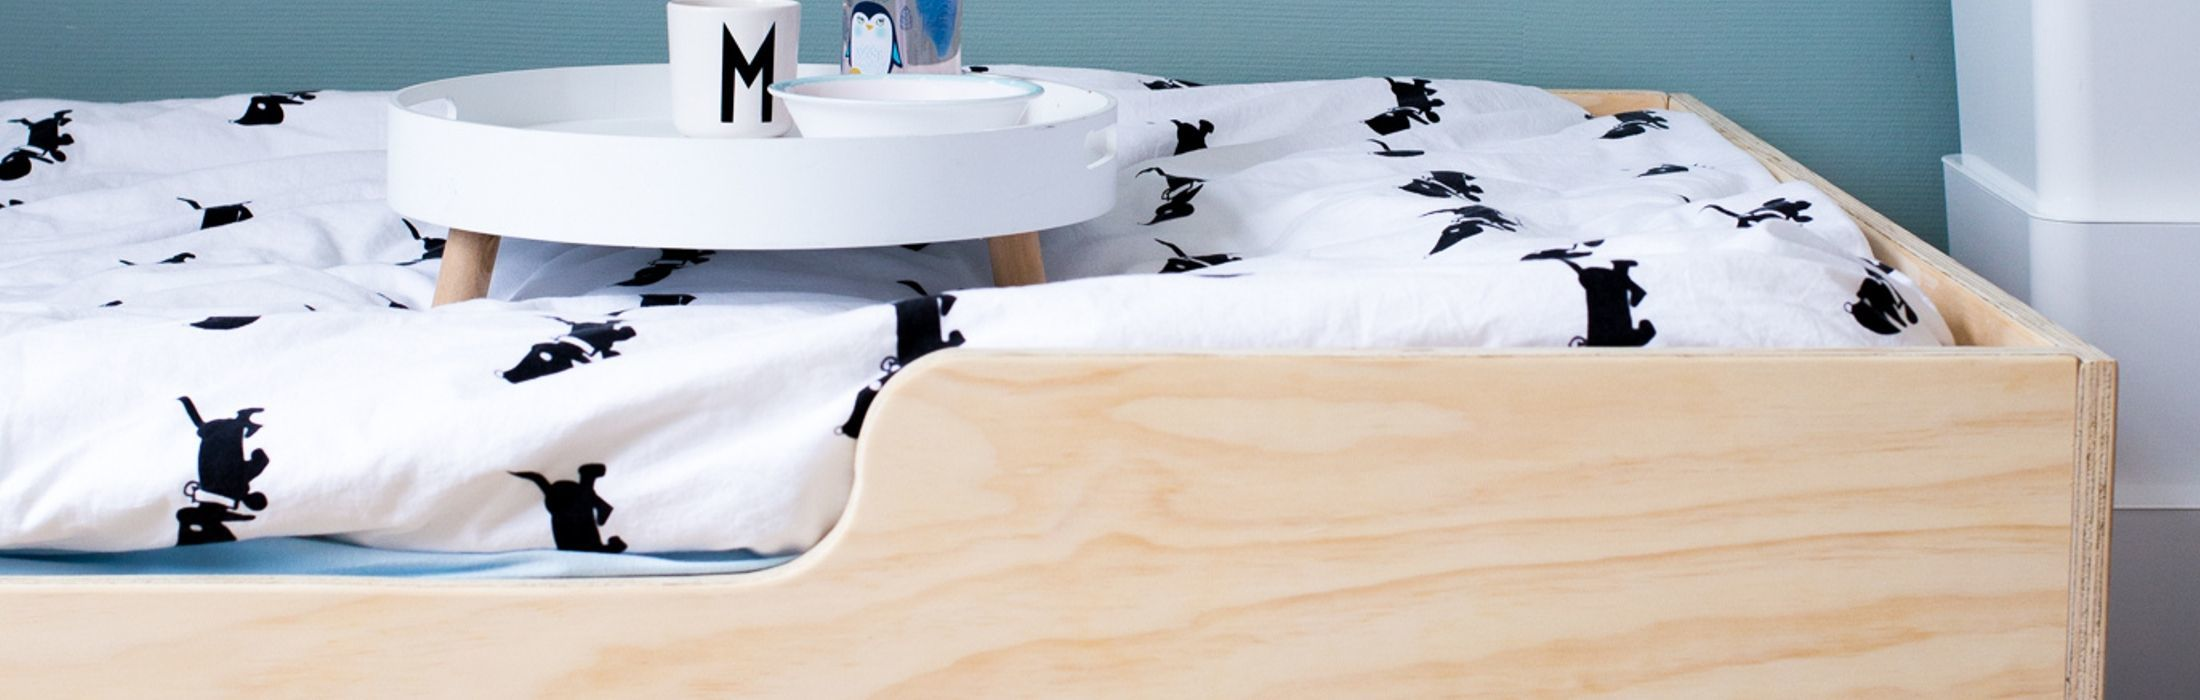 Juniorbed stoer peuterbed Superbed underlayment